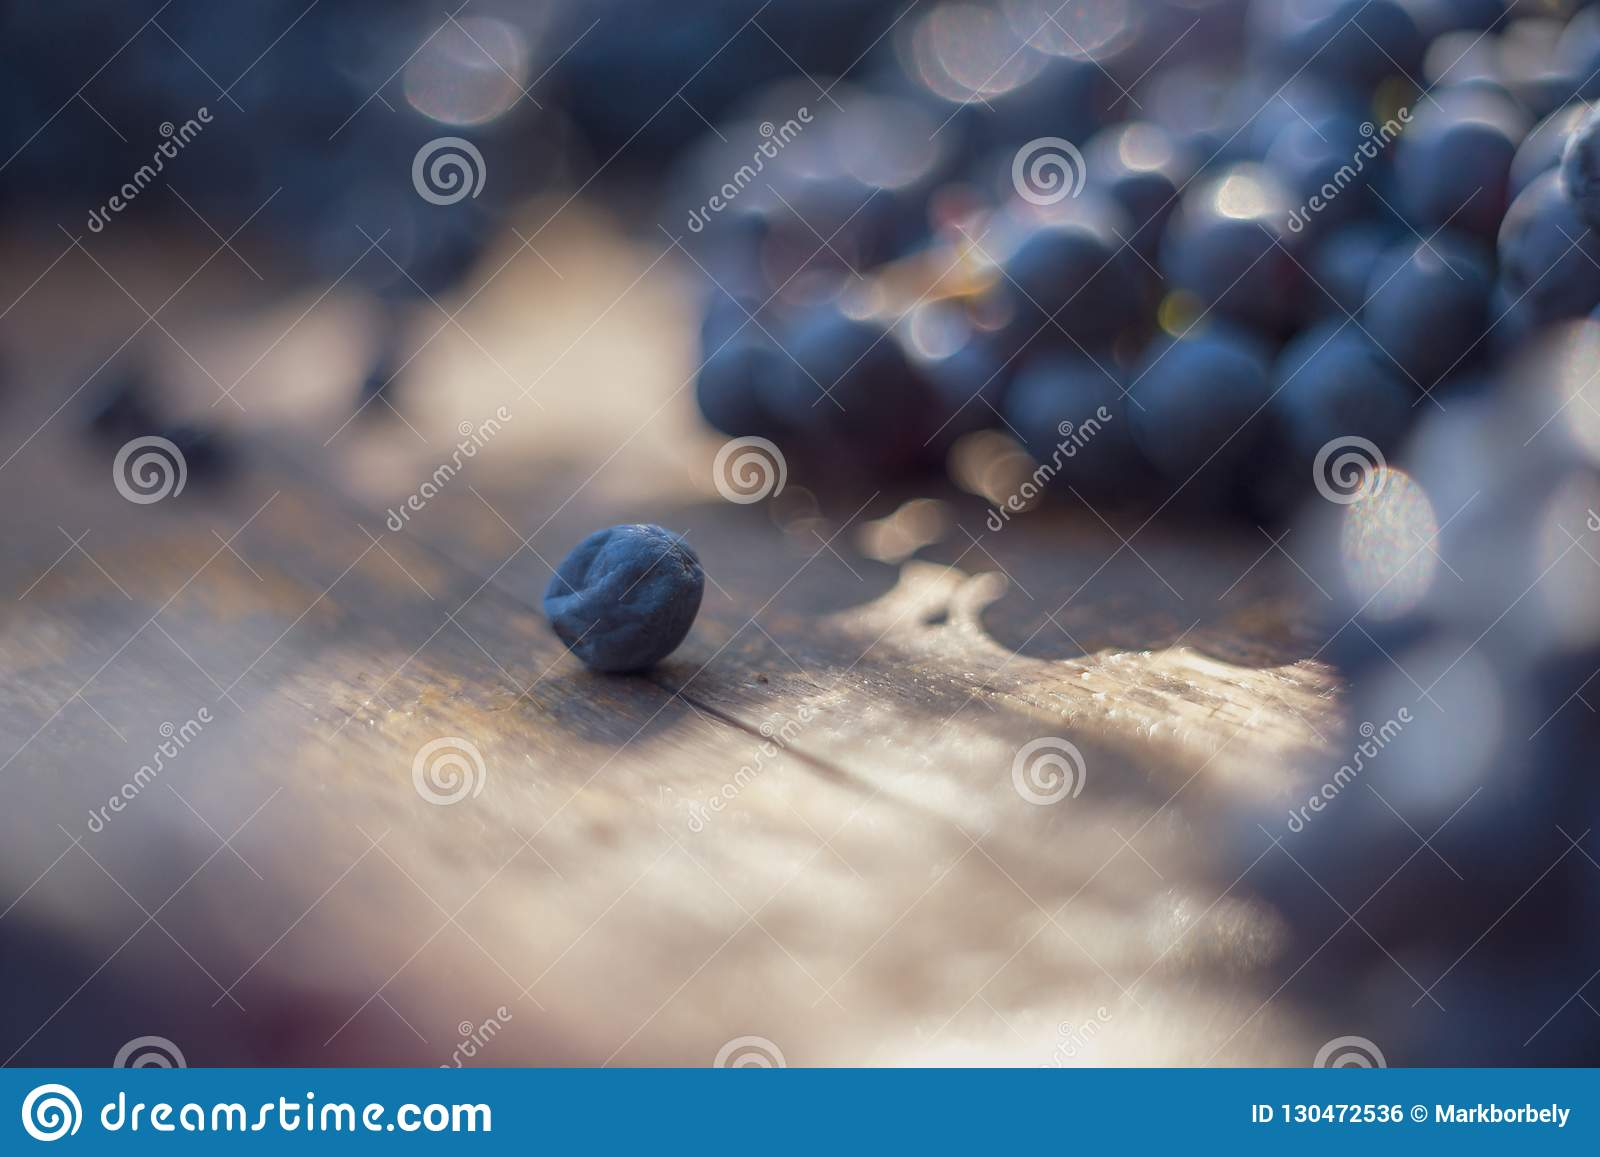 Macro view of blue grapes on wine barrel